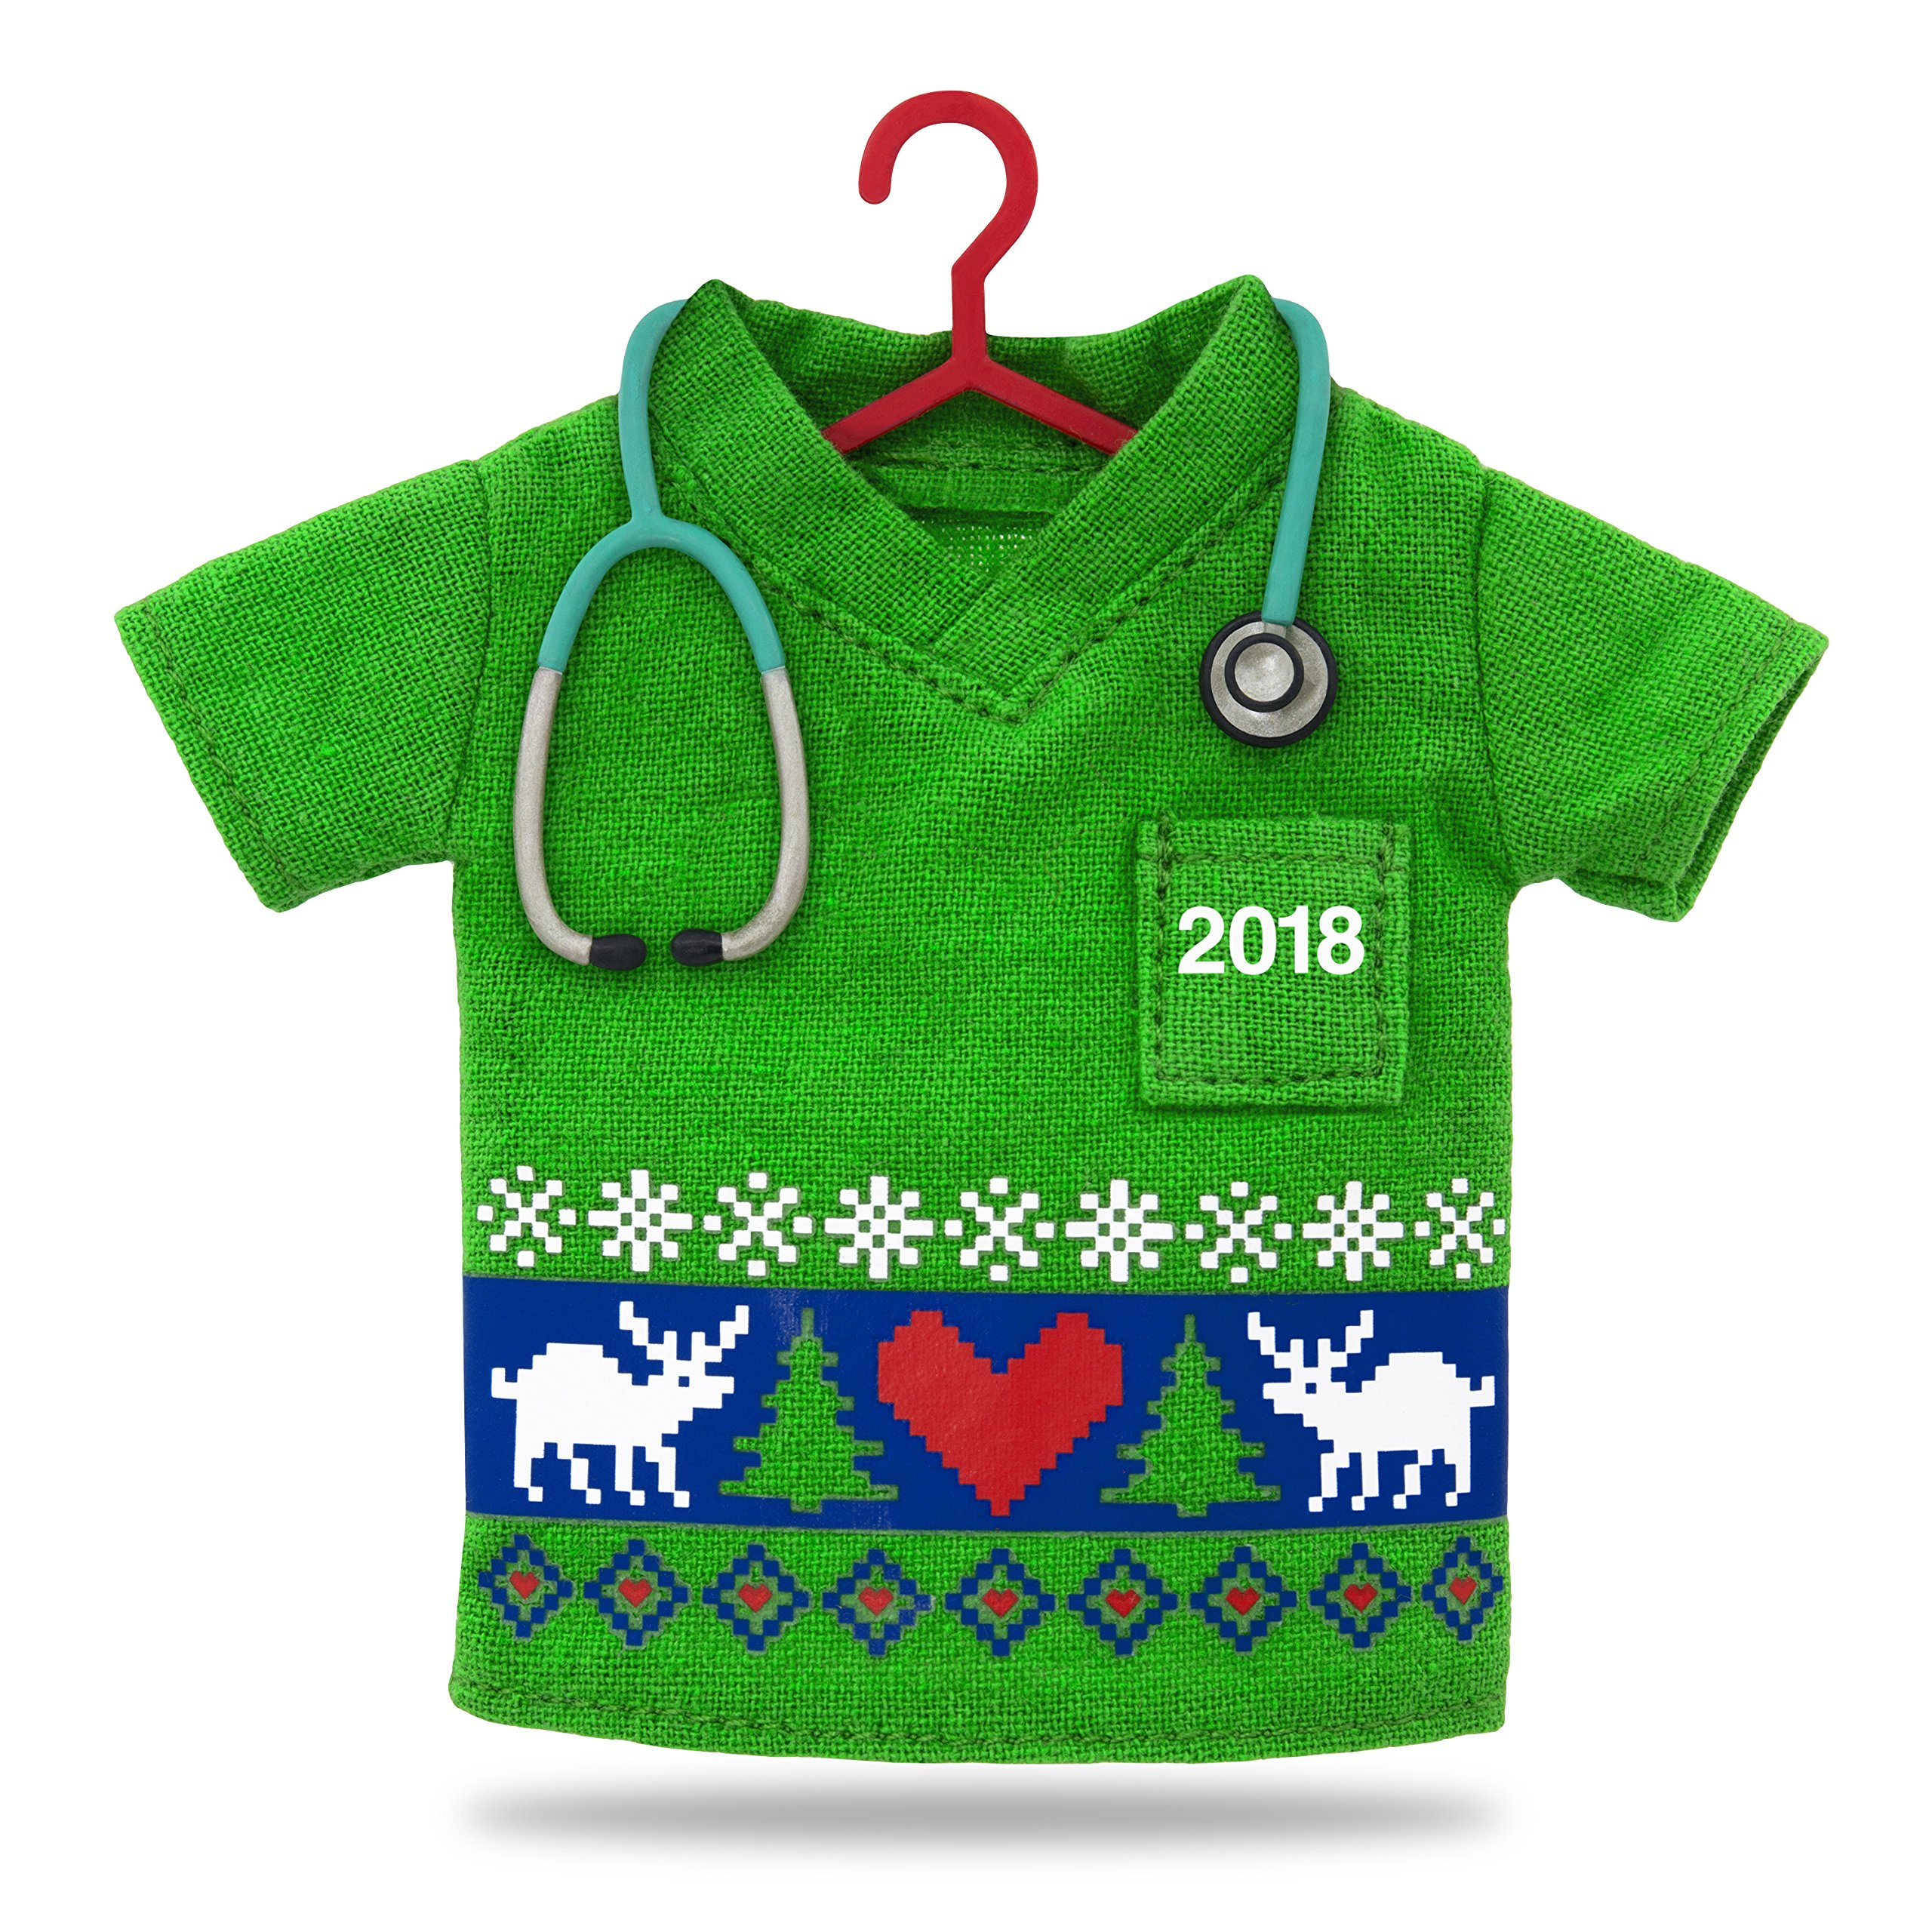 Hallmark Keepsake Christmas Ornament 2018 Year Dated, Happy Holiday Scrubs